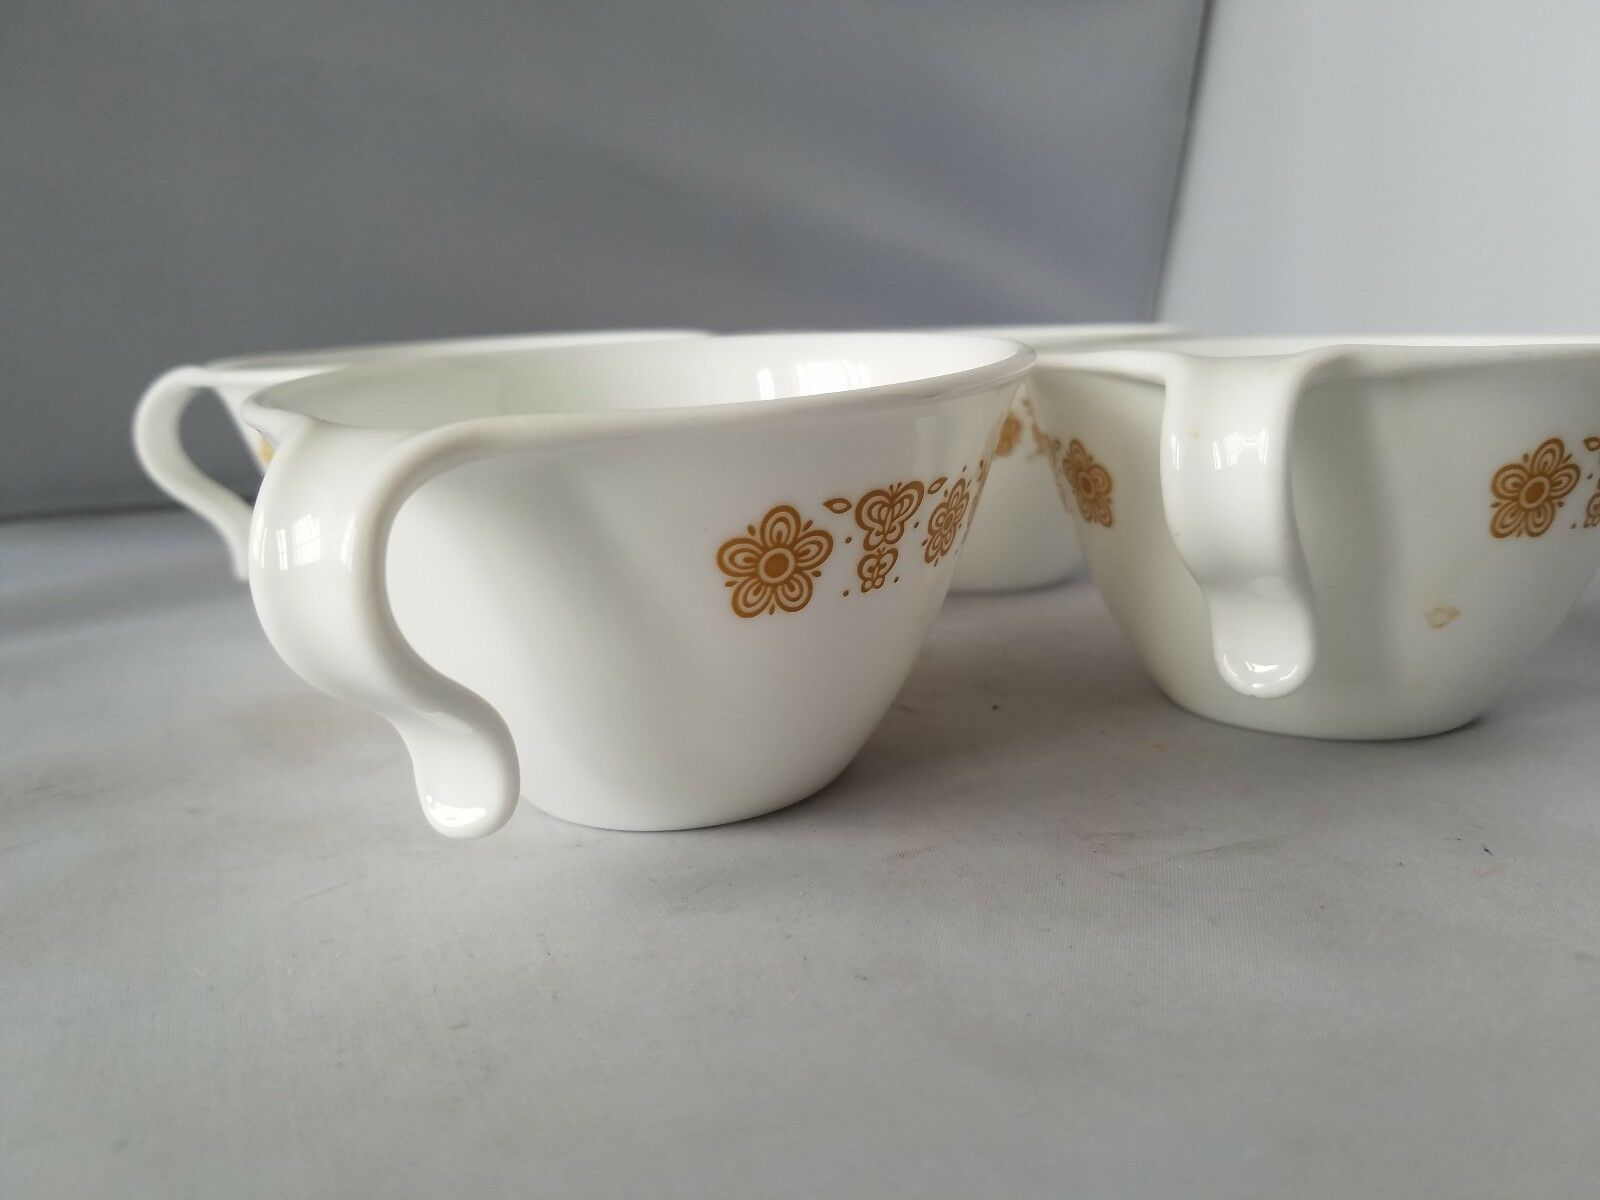 Corelle Corning Ware Teacup Hook Handle Set 2 Tea Cups Butterfly Gold Pattern 4""